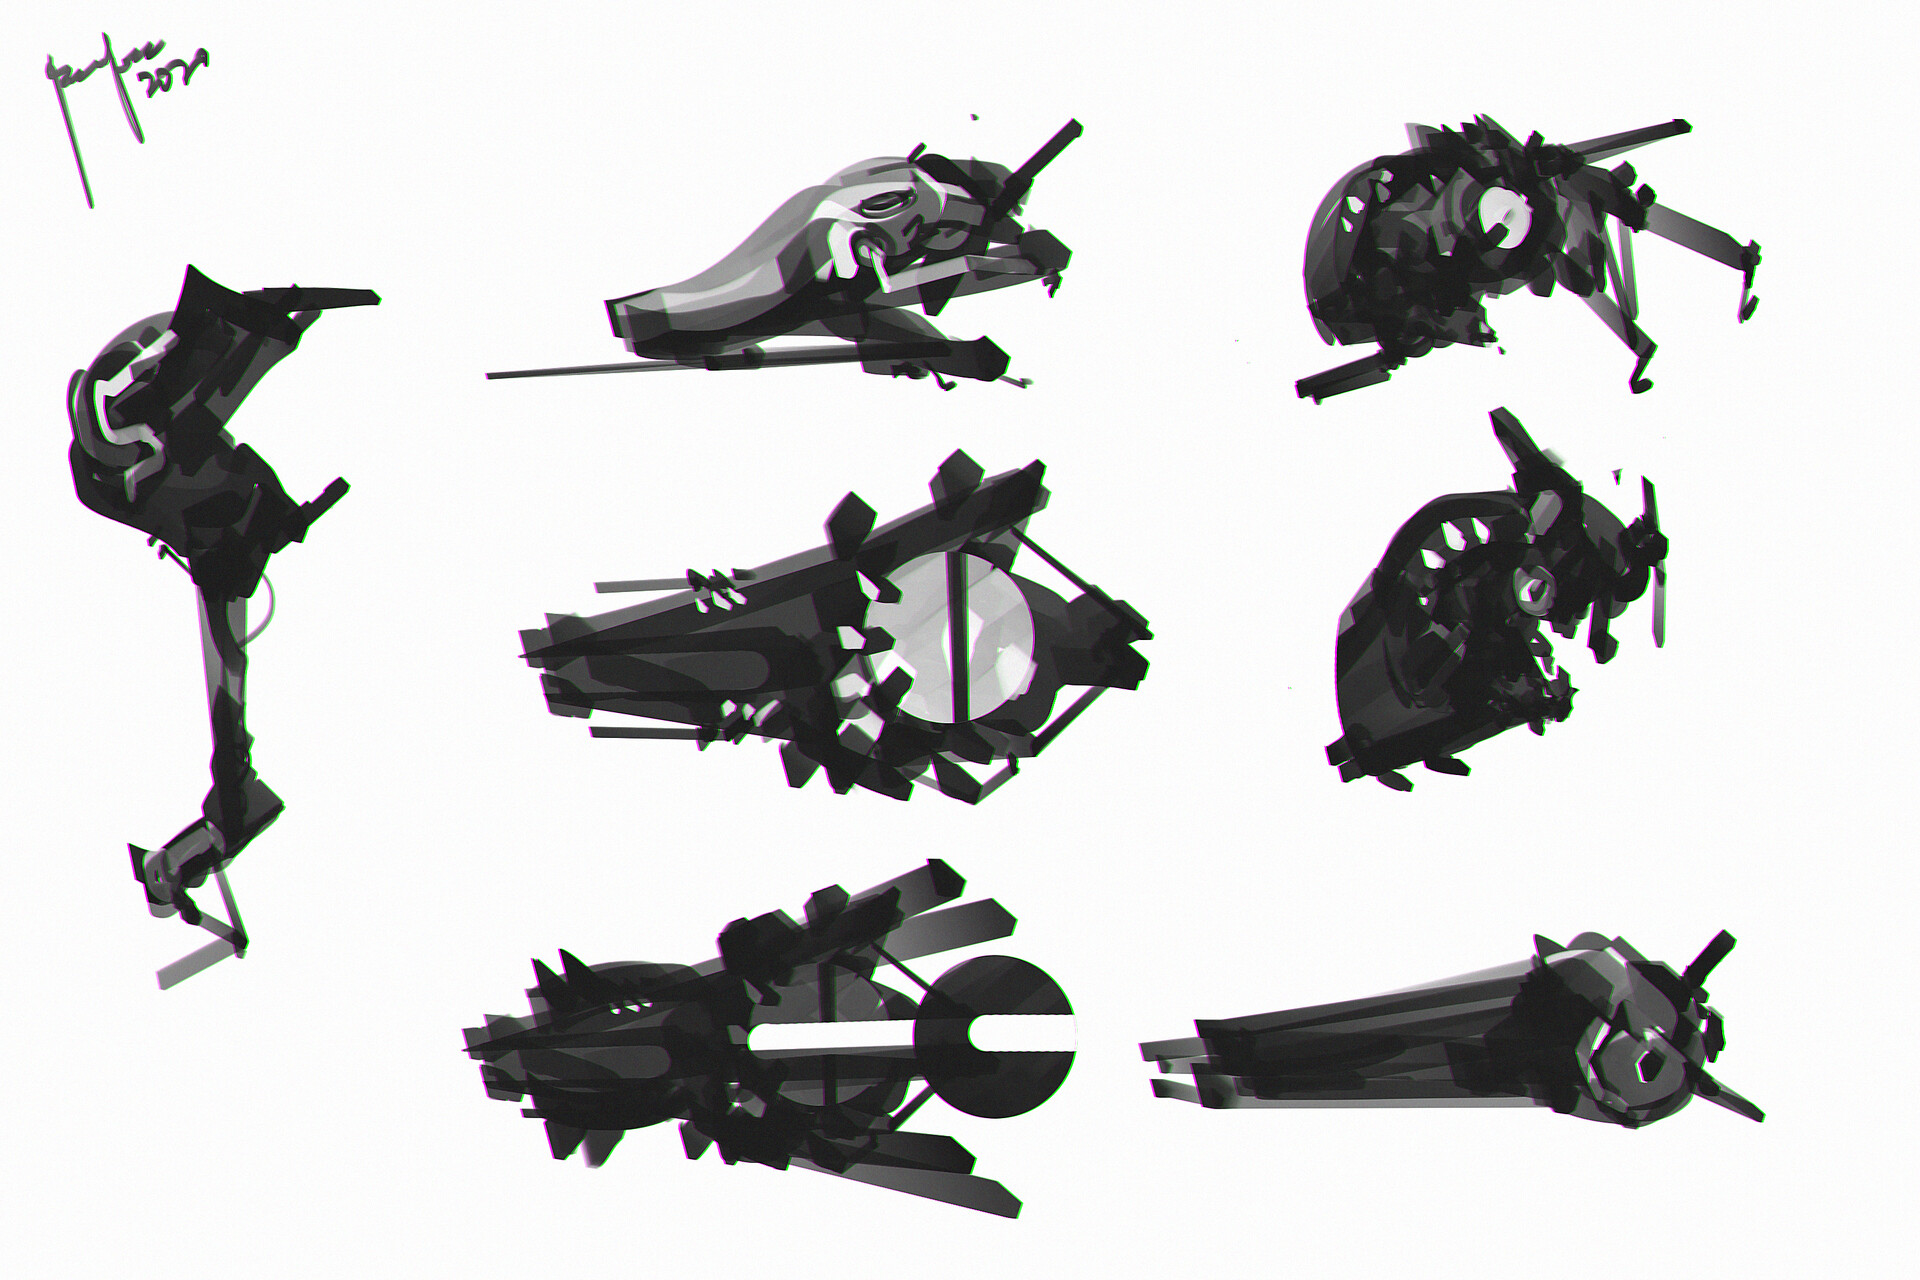 agile space fighters - concept designs